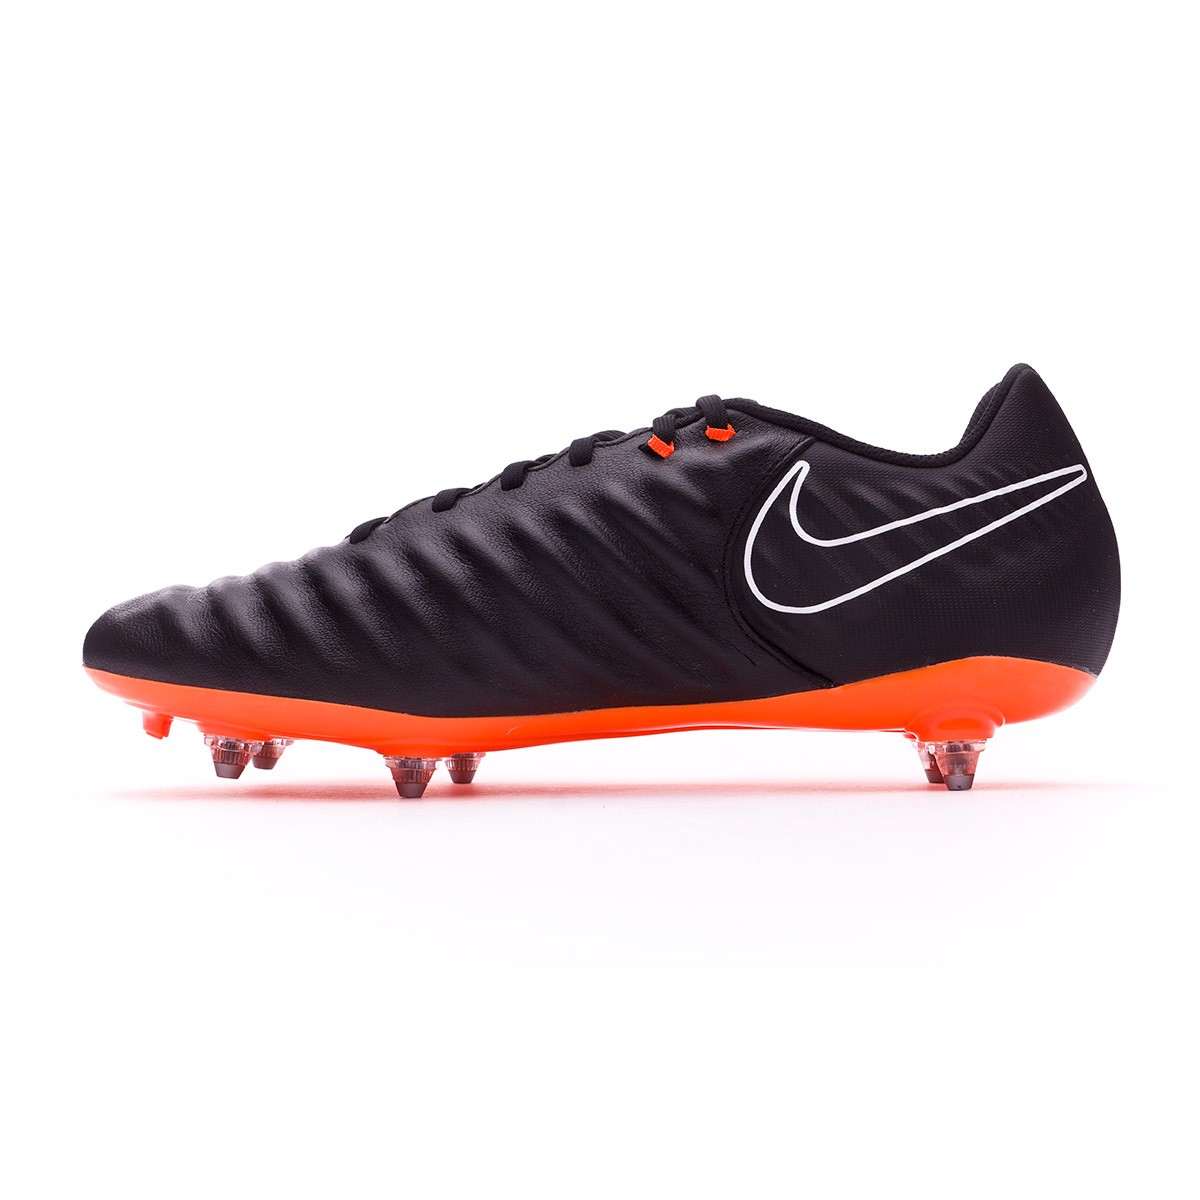 lowest price 4517b b6138 Football Boots Nike Tiempo Legend VII Academy SG Black-Total orange-White -  Football store Fútbol Emotion